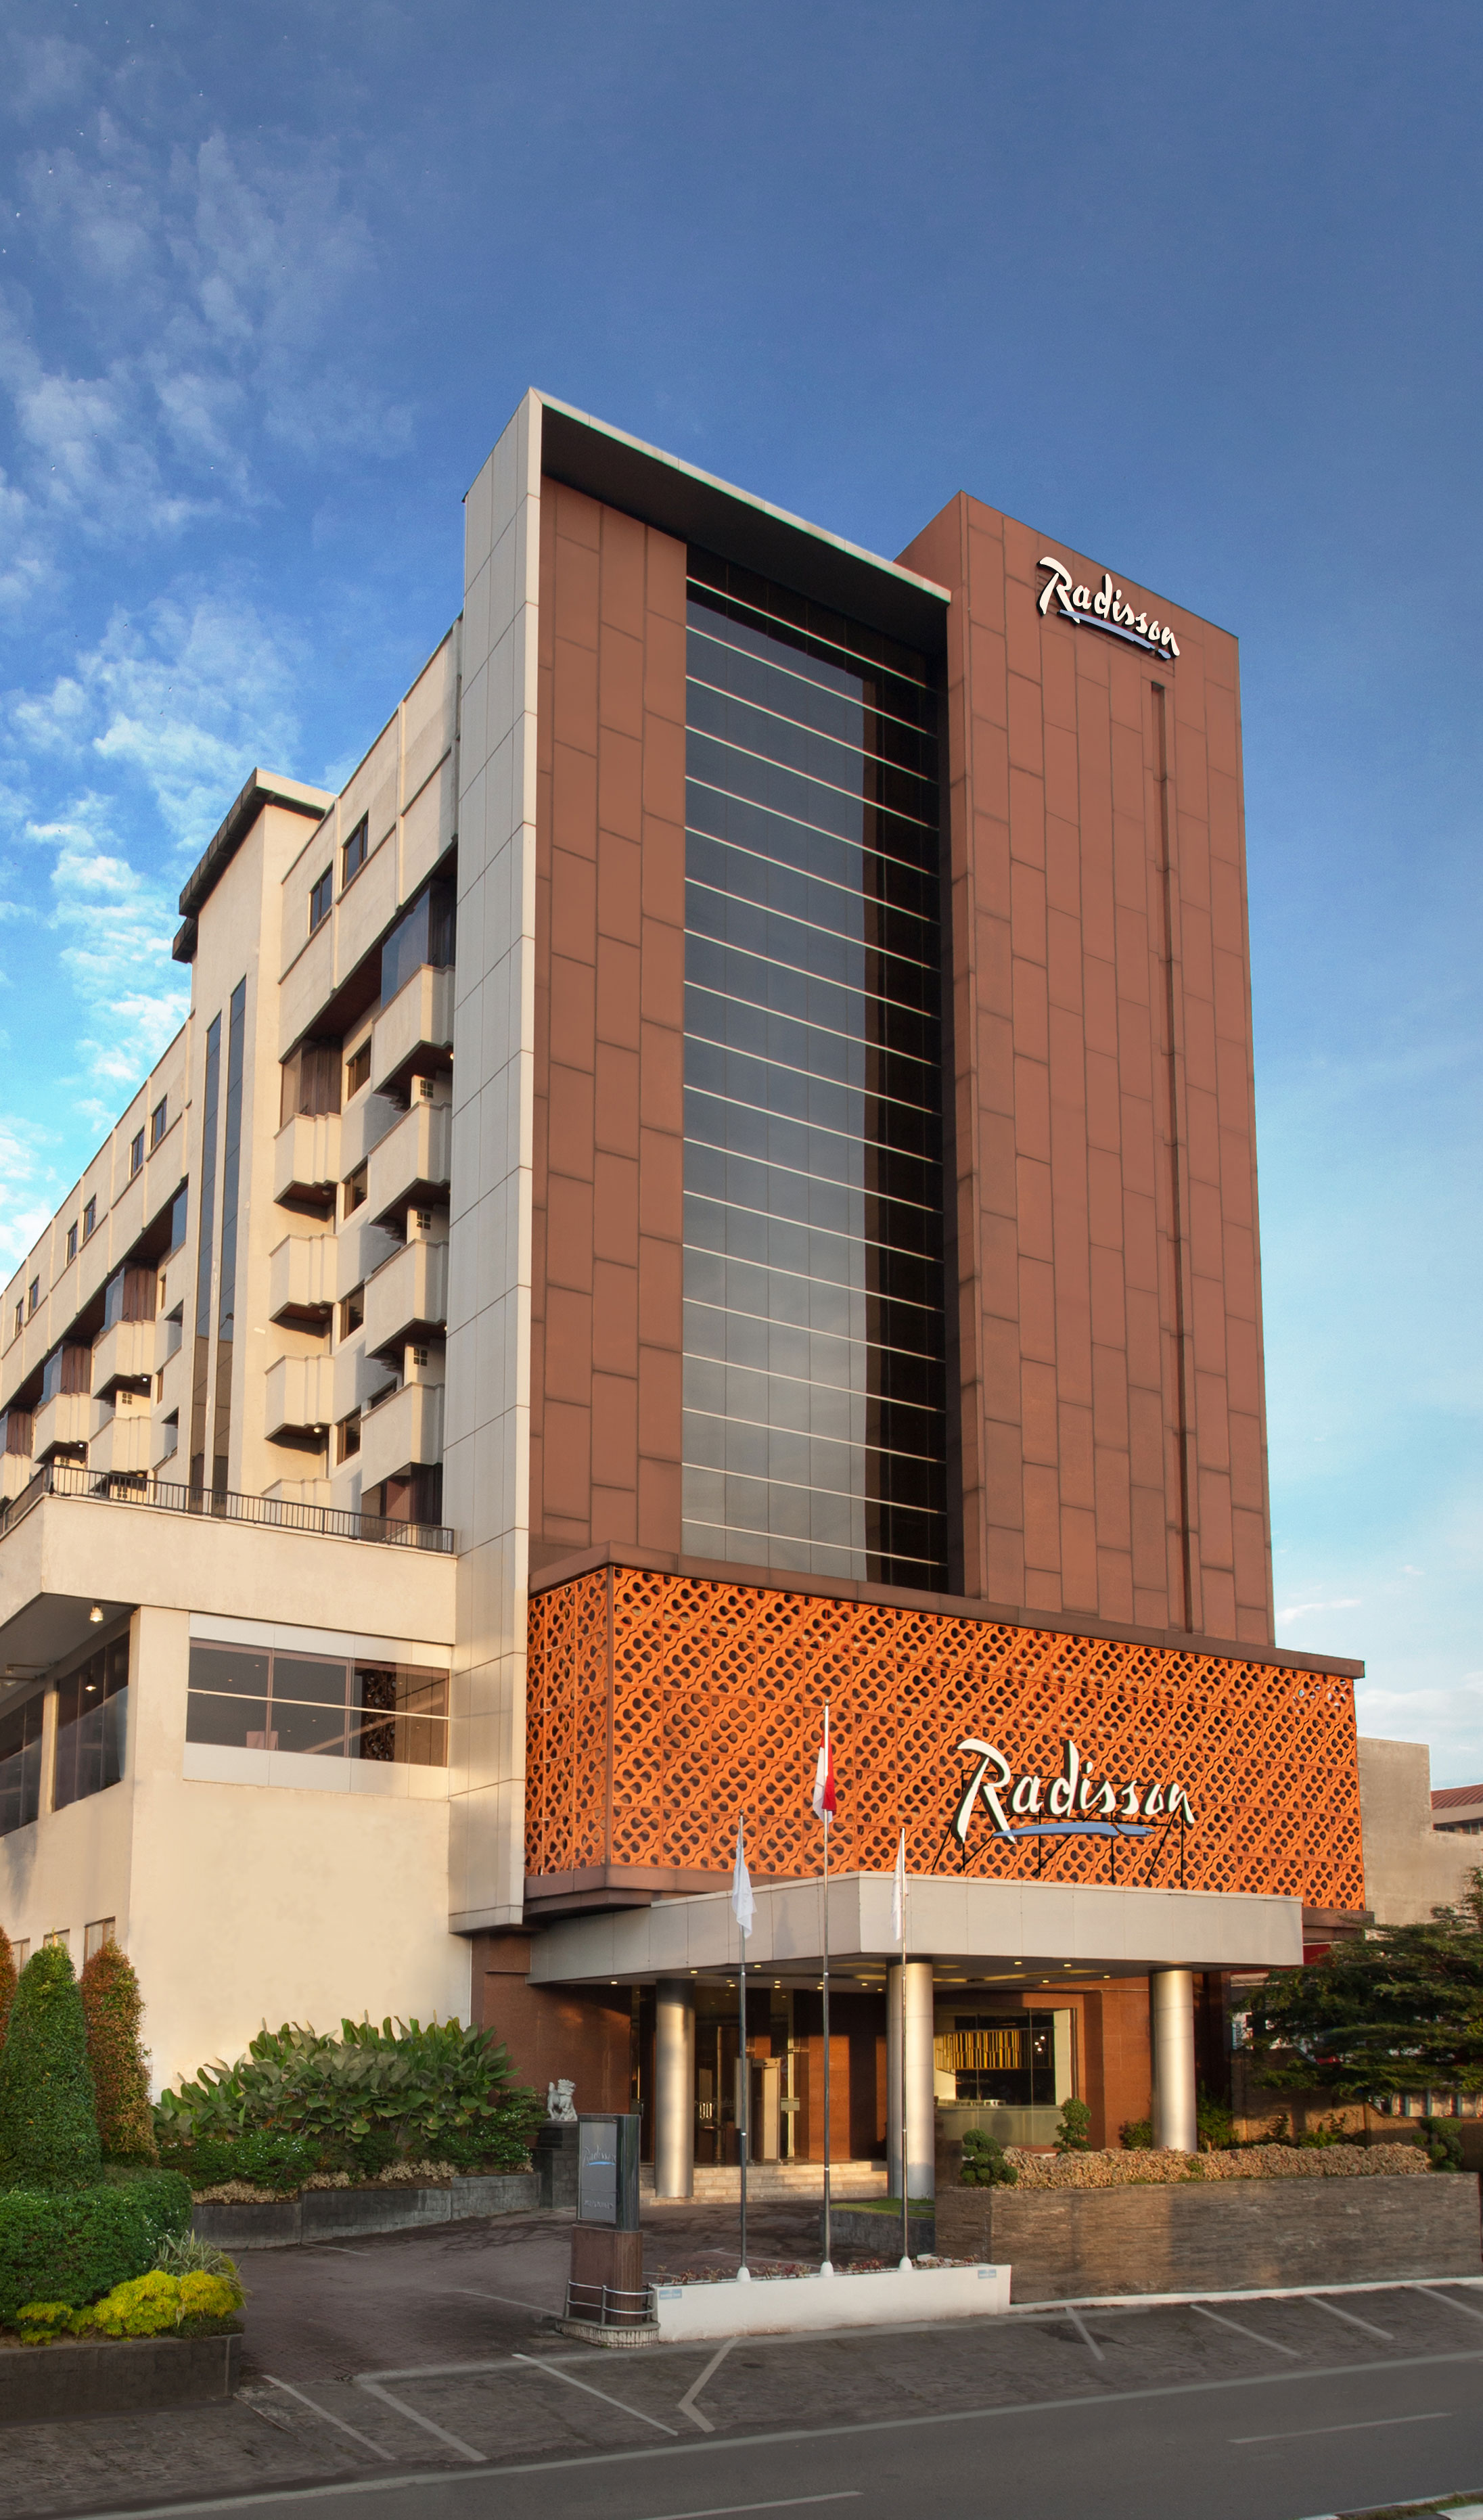 Αποτέλεσμα εικόνας για Radisson Brings World-Class Hospitality and Extensive Event Space To Medan